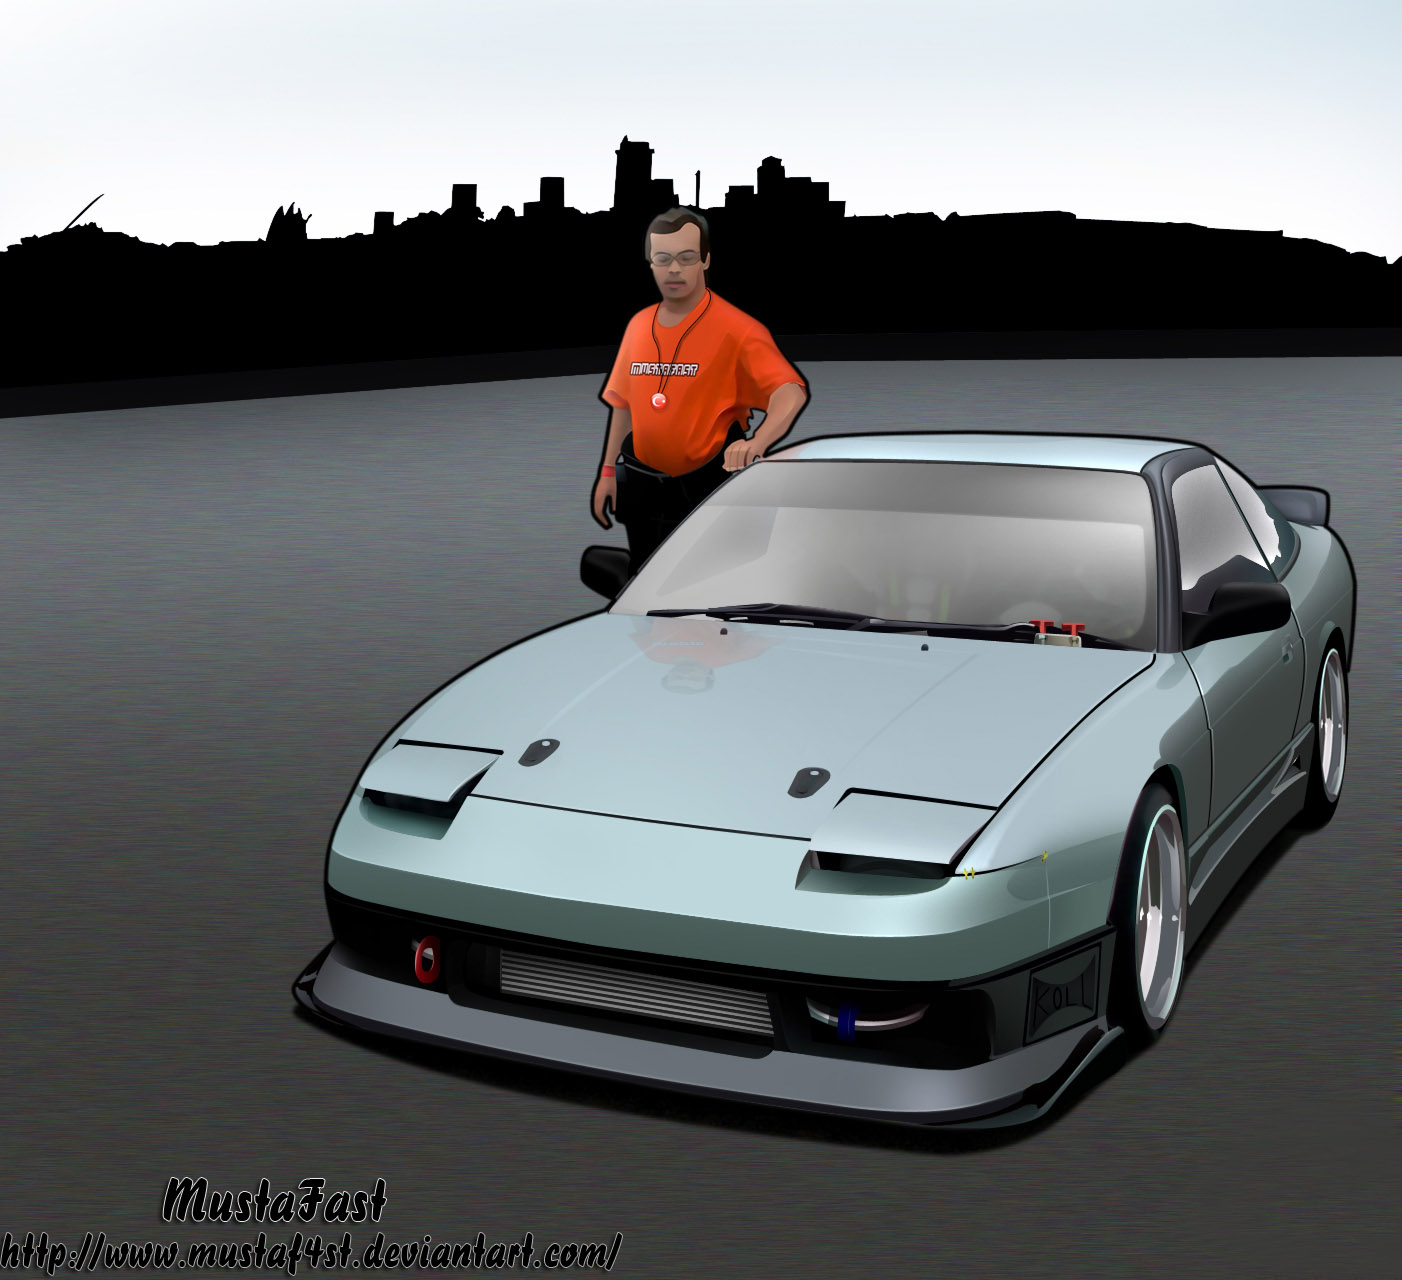 Nissan 180sx Toon by mustaF4ST